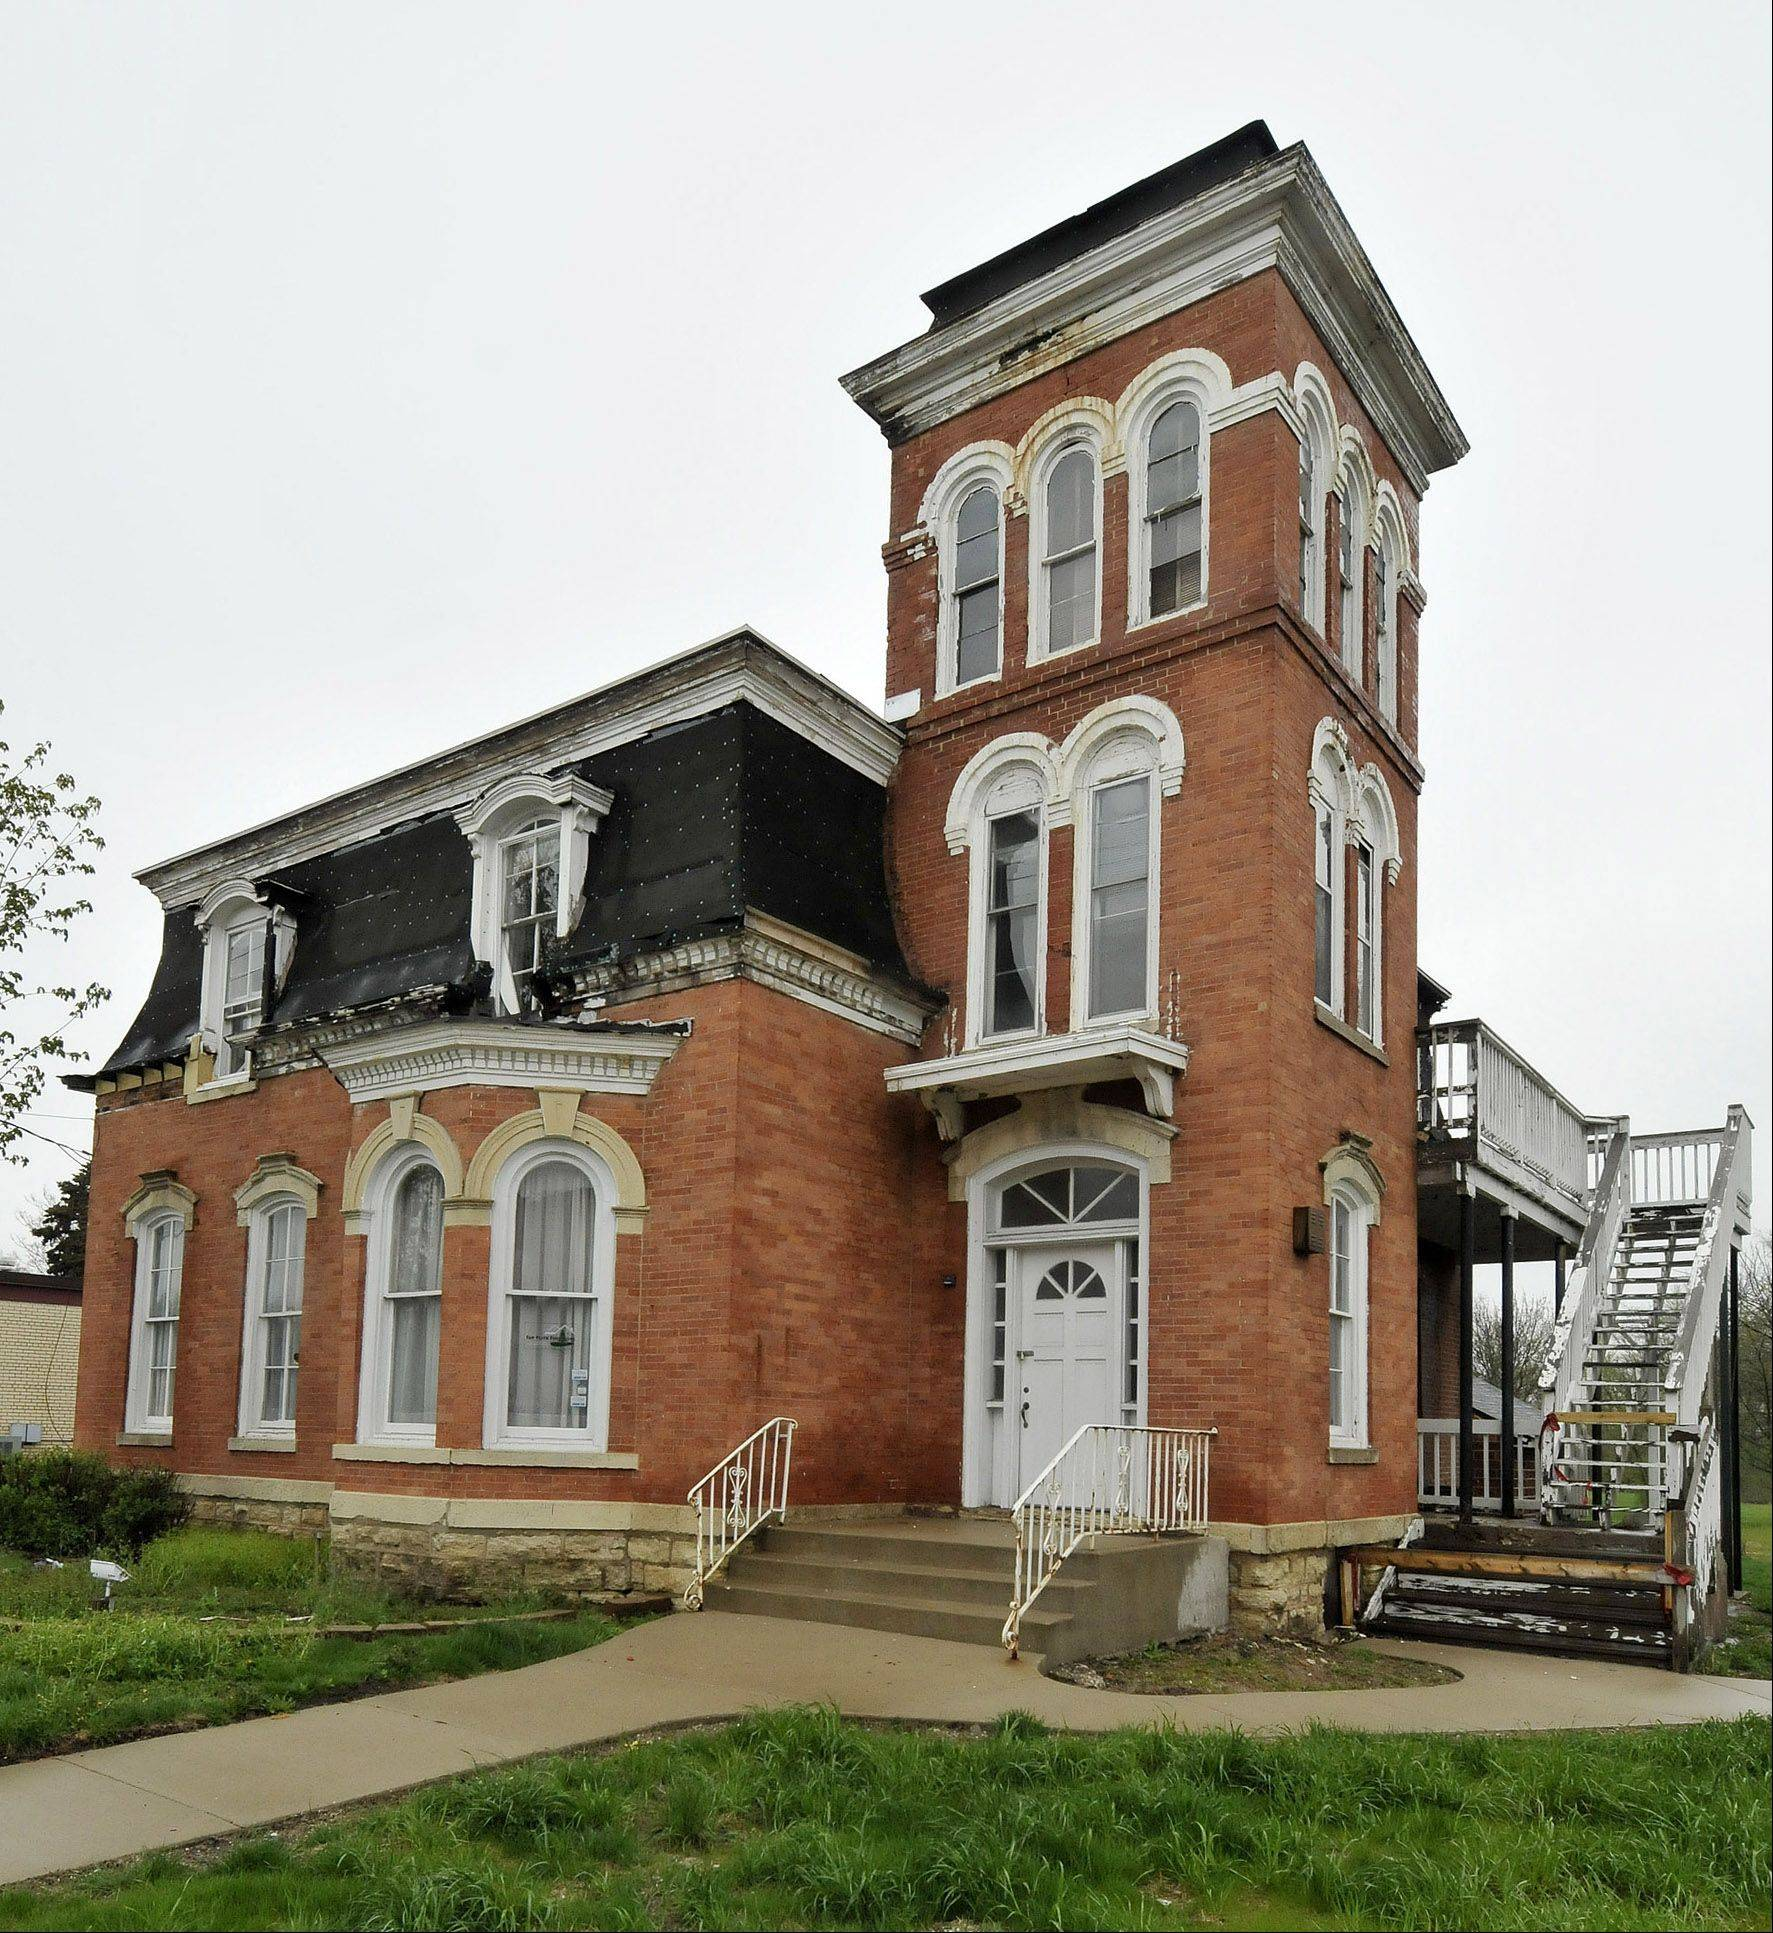 Members of the West Chicago Historical Preservation Commission say the Joel Wiant House at 151 W. Washington St. should be saved. The 144-year-old structure was built for one of DuPage County's first white settlers, who became a prominent businessman.